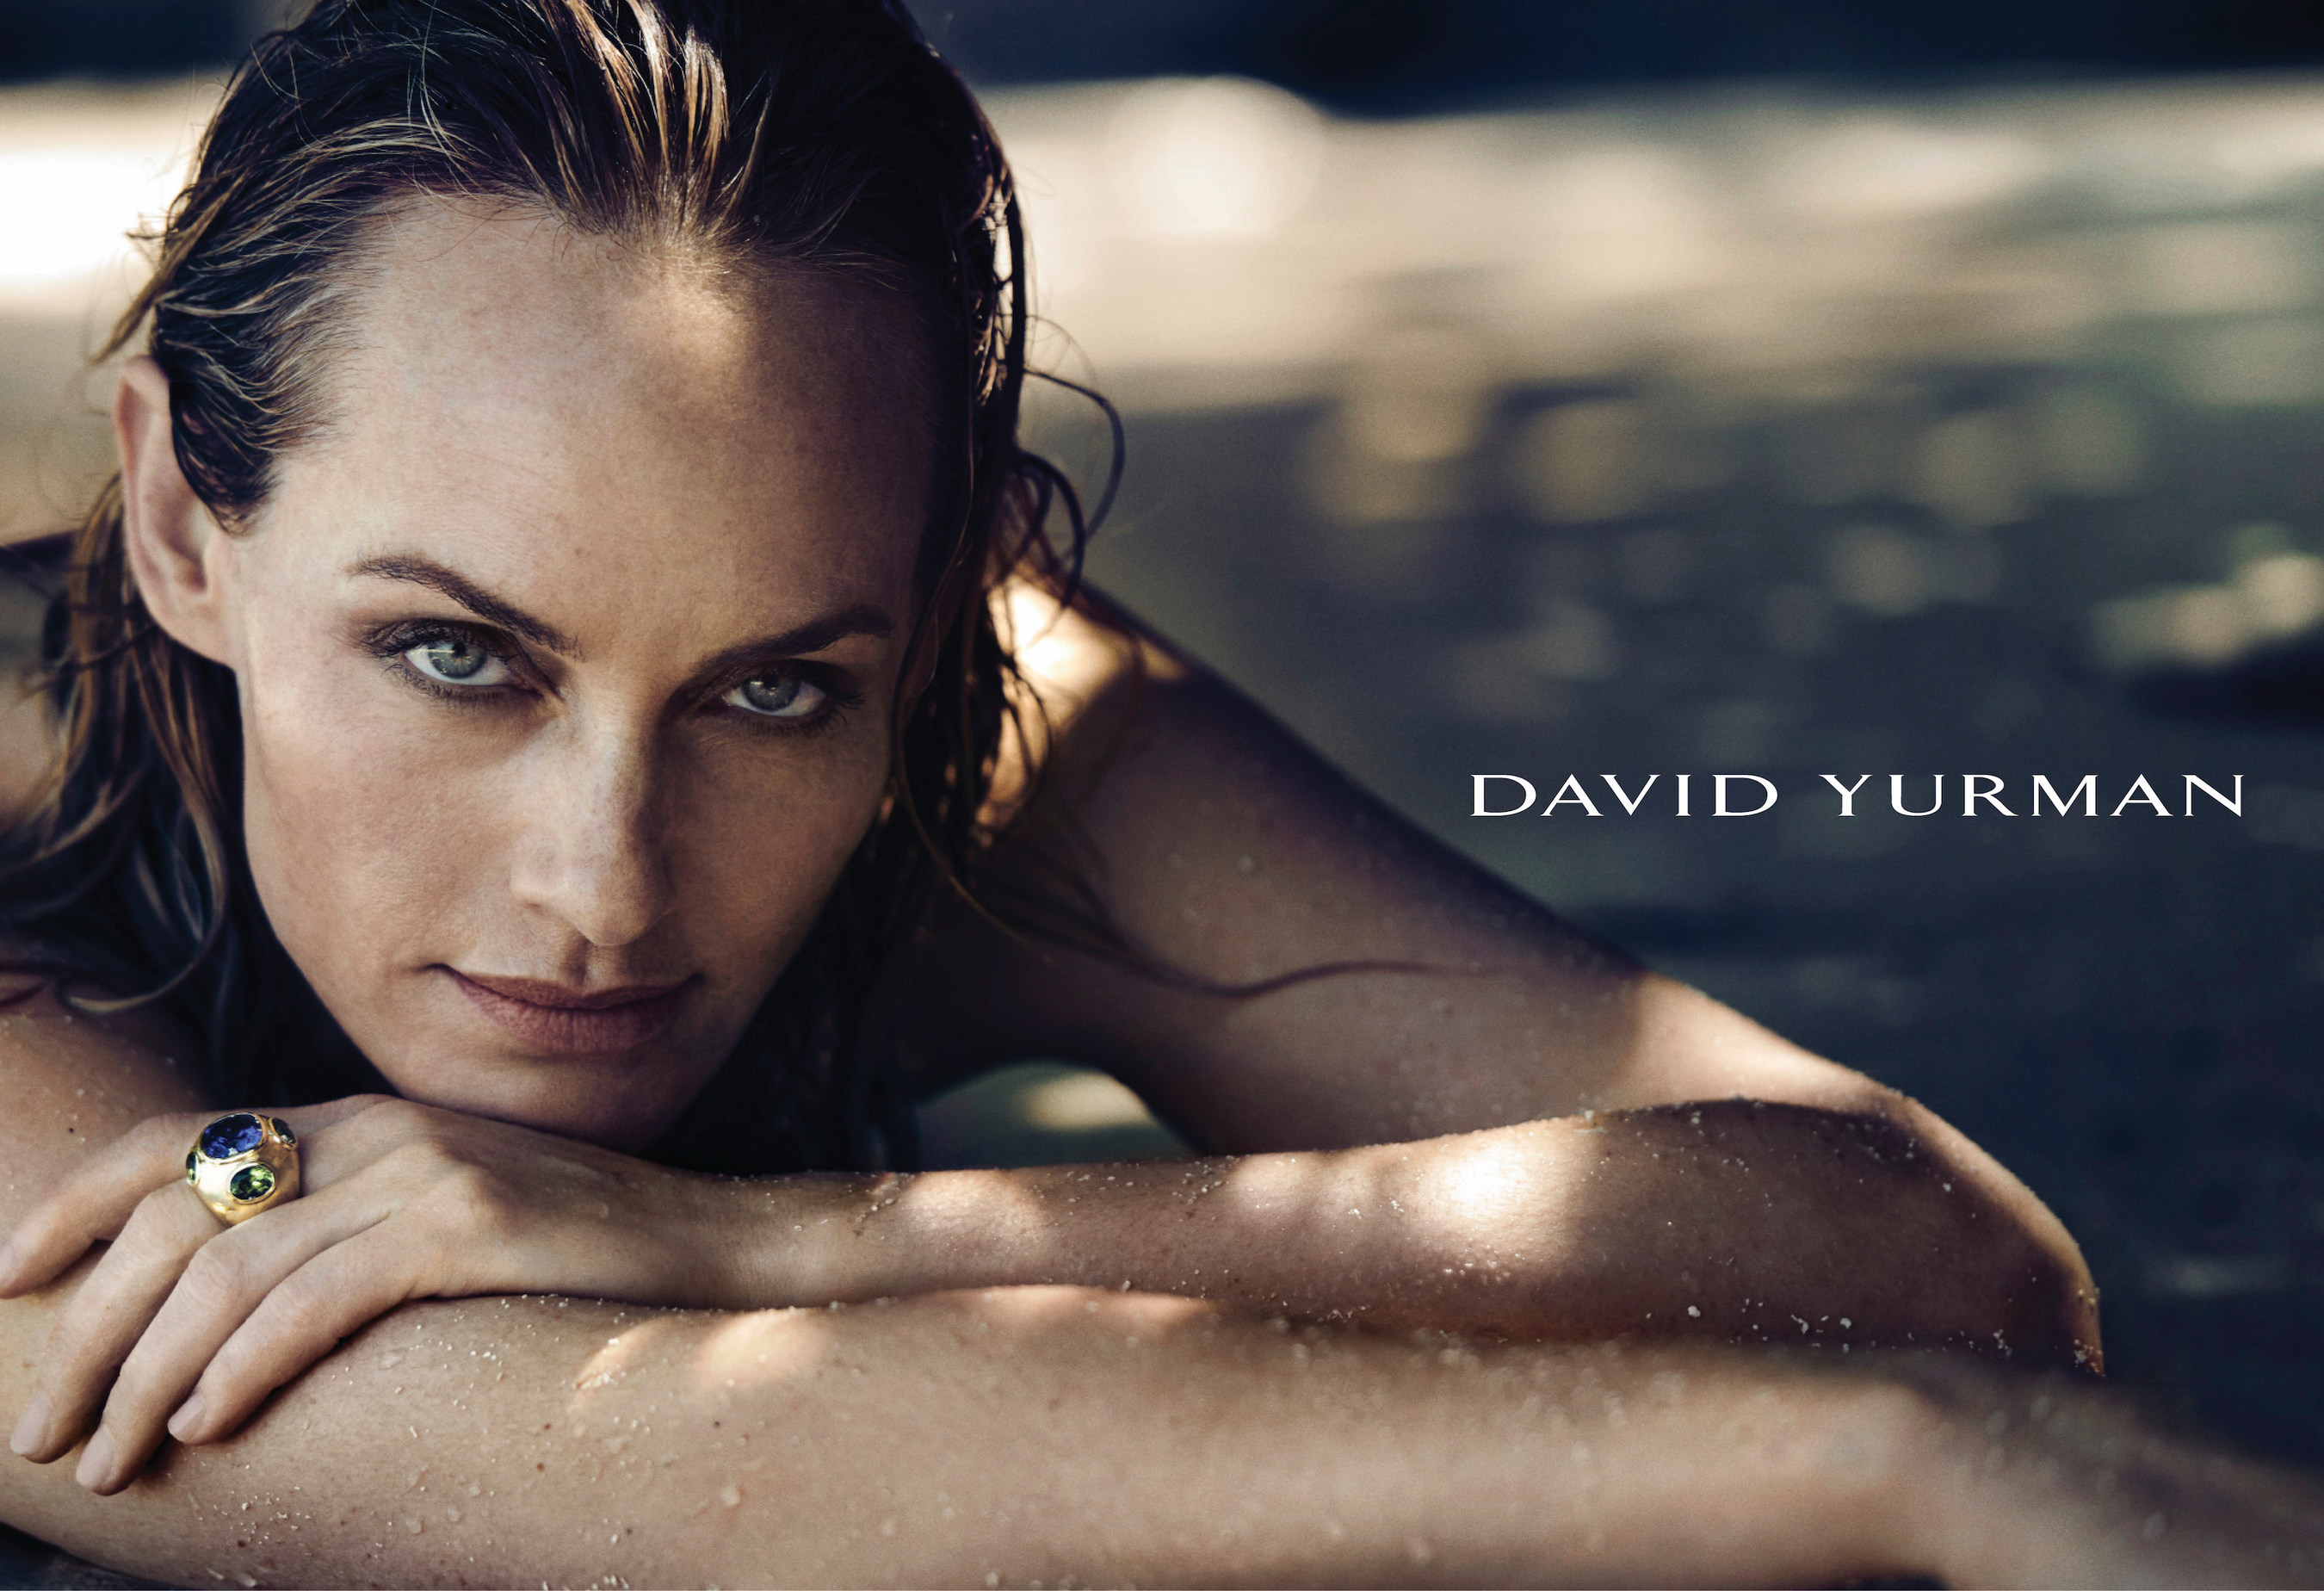 David Yurman - Peter Lindbergh